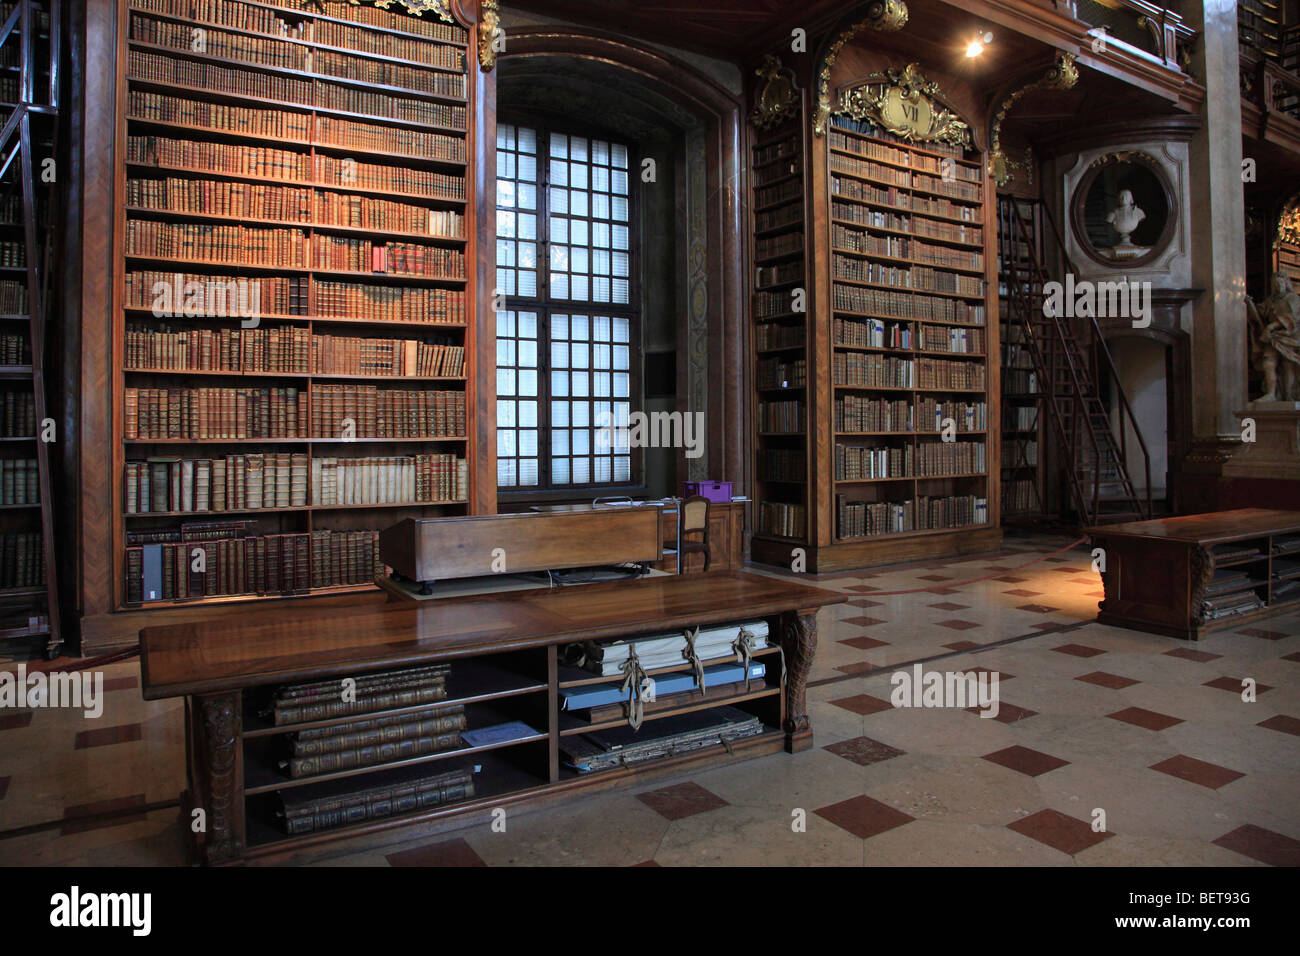 Austria, Vienna, National Library, Prunksaal, ceremonial hall - Stock Image